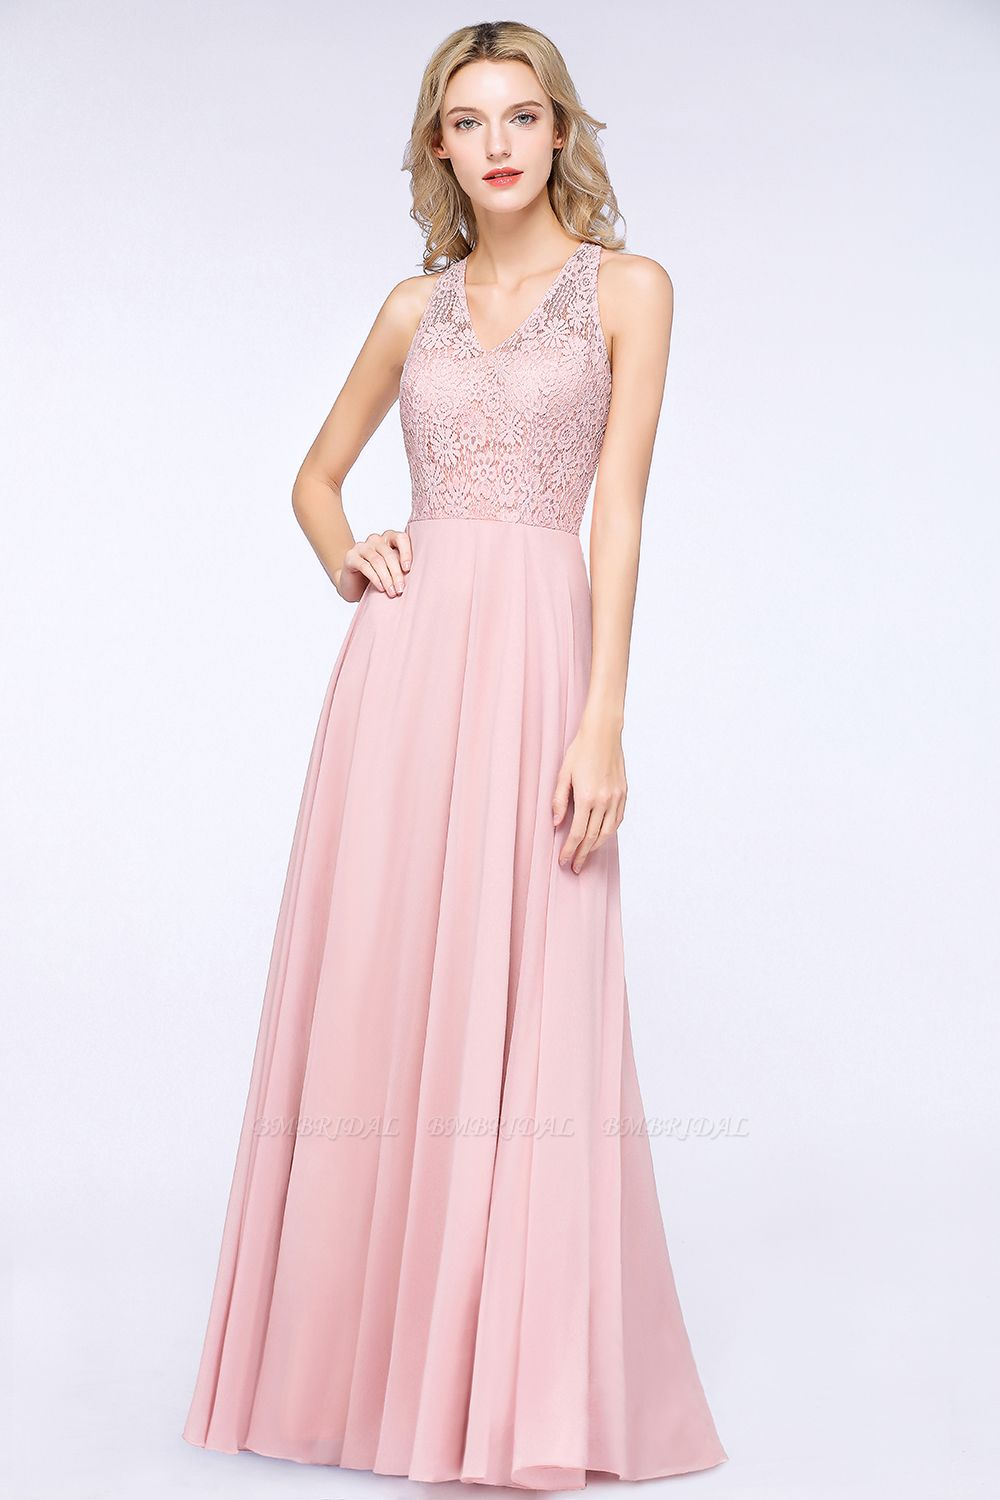 BMbridal.com provides Styles and Colors of the Bridesmaid Dresses to Choose from